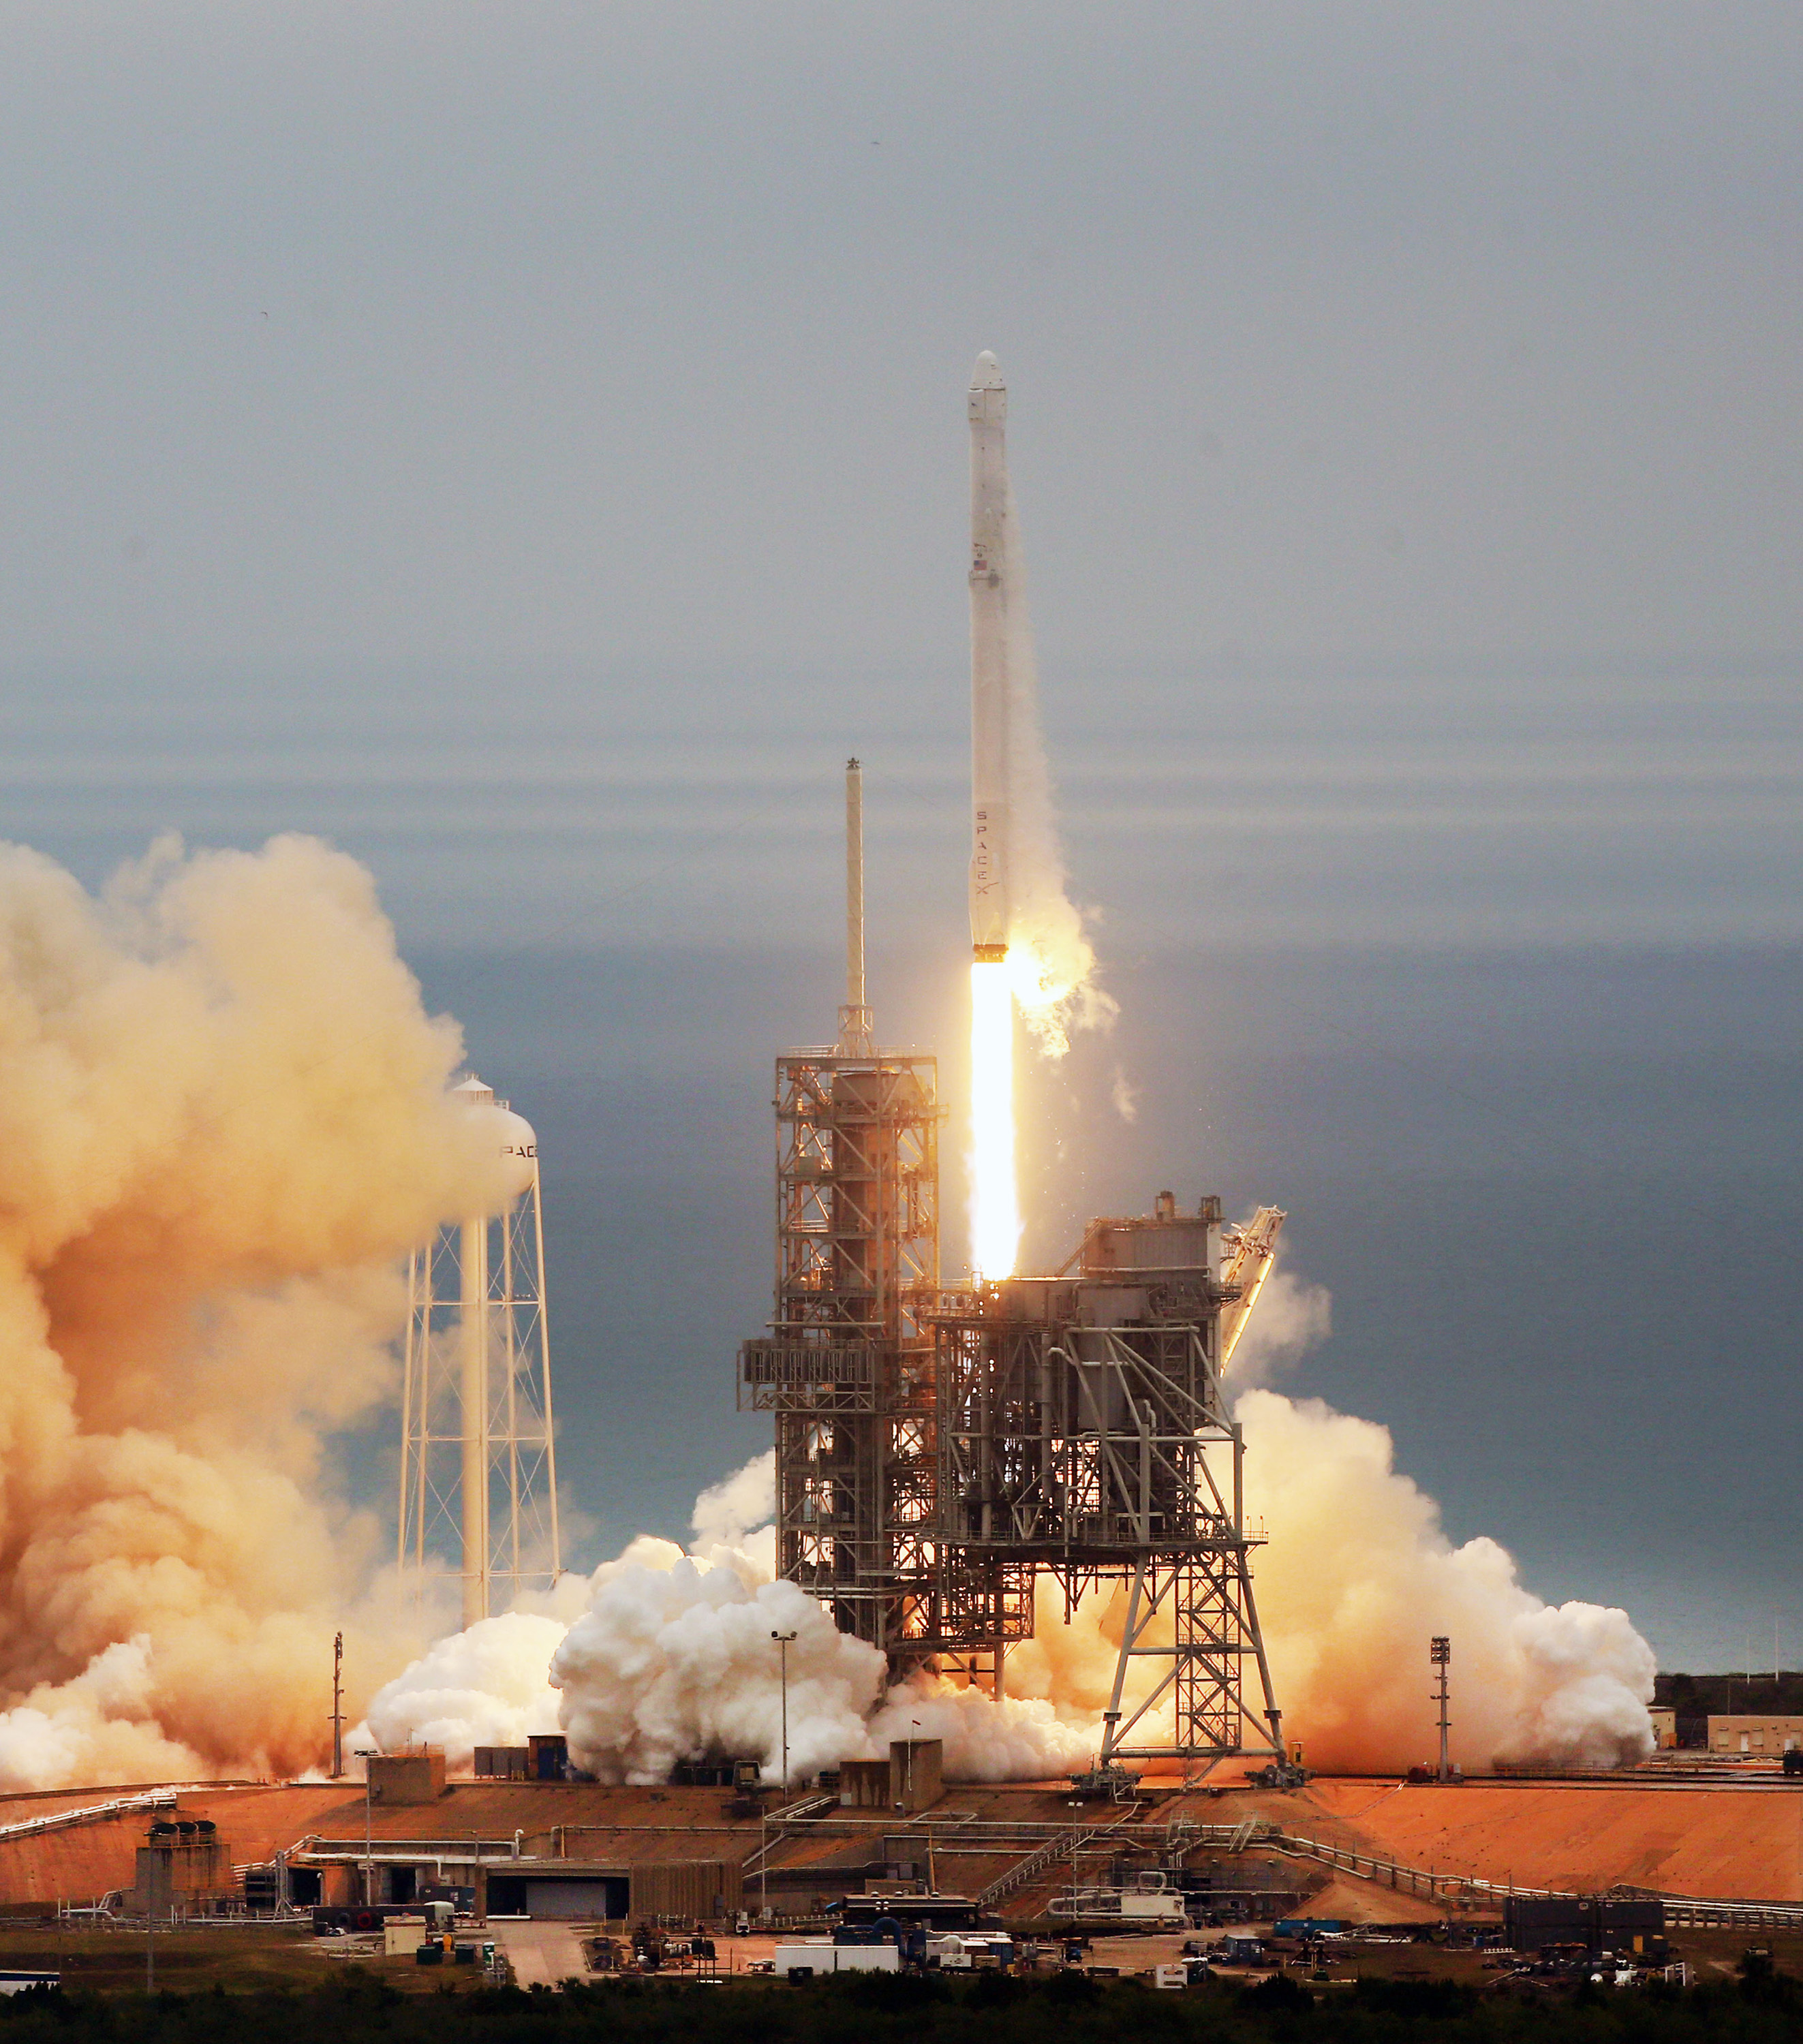 SpaceX postpones launch due to wind